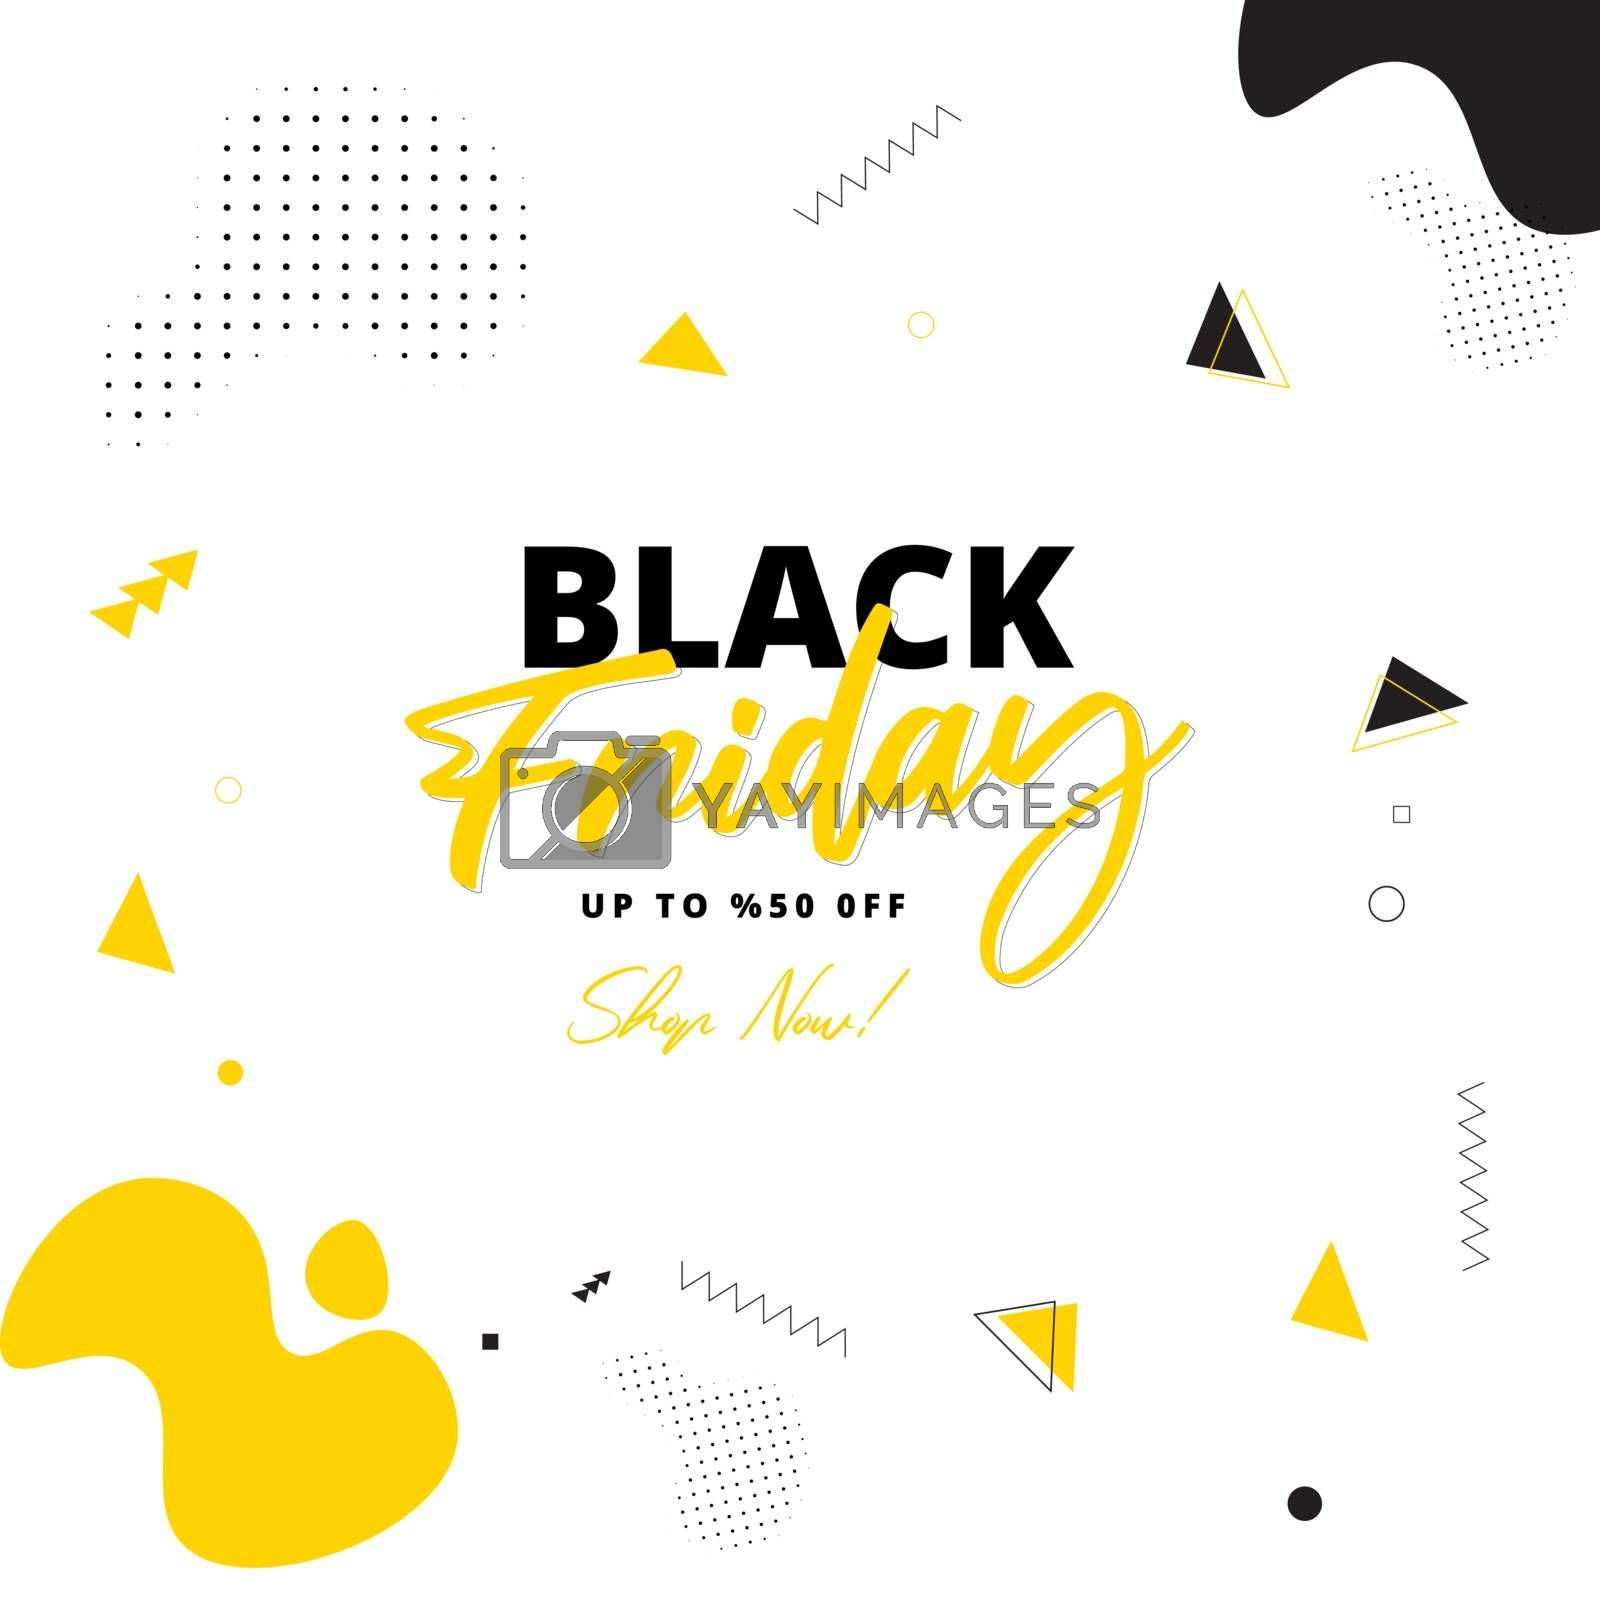 Black Friday Sale poster or template design with 50% discount offer on yellow abstract background.